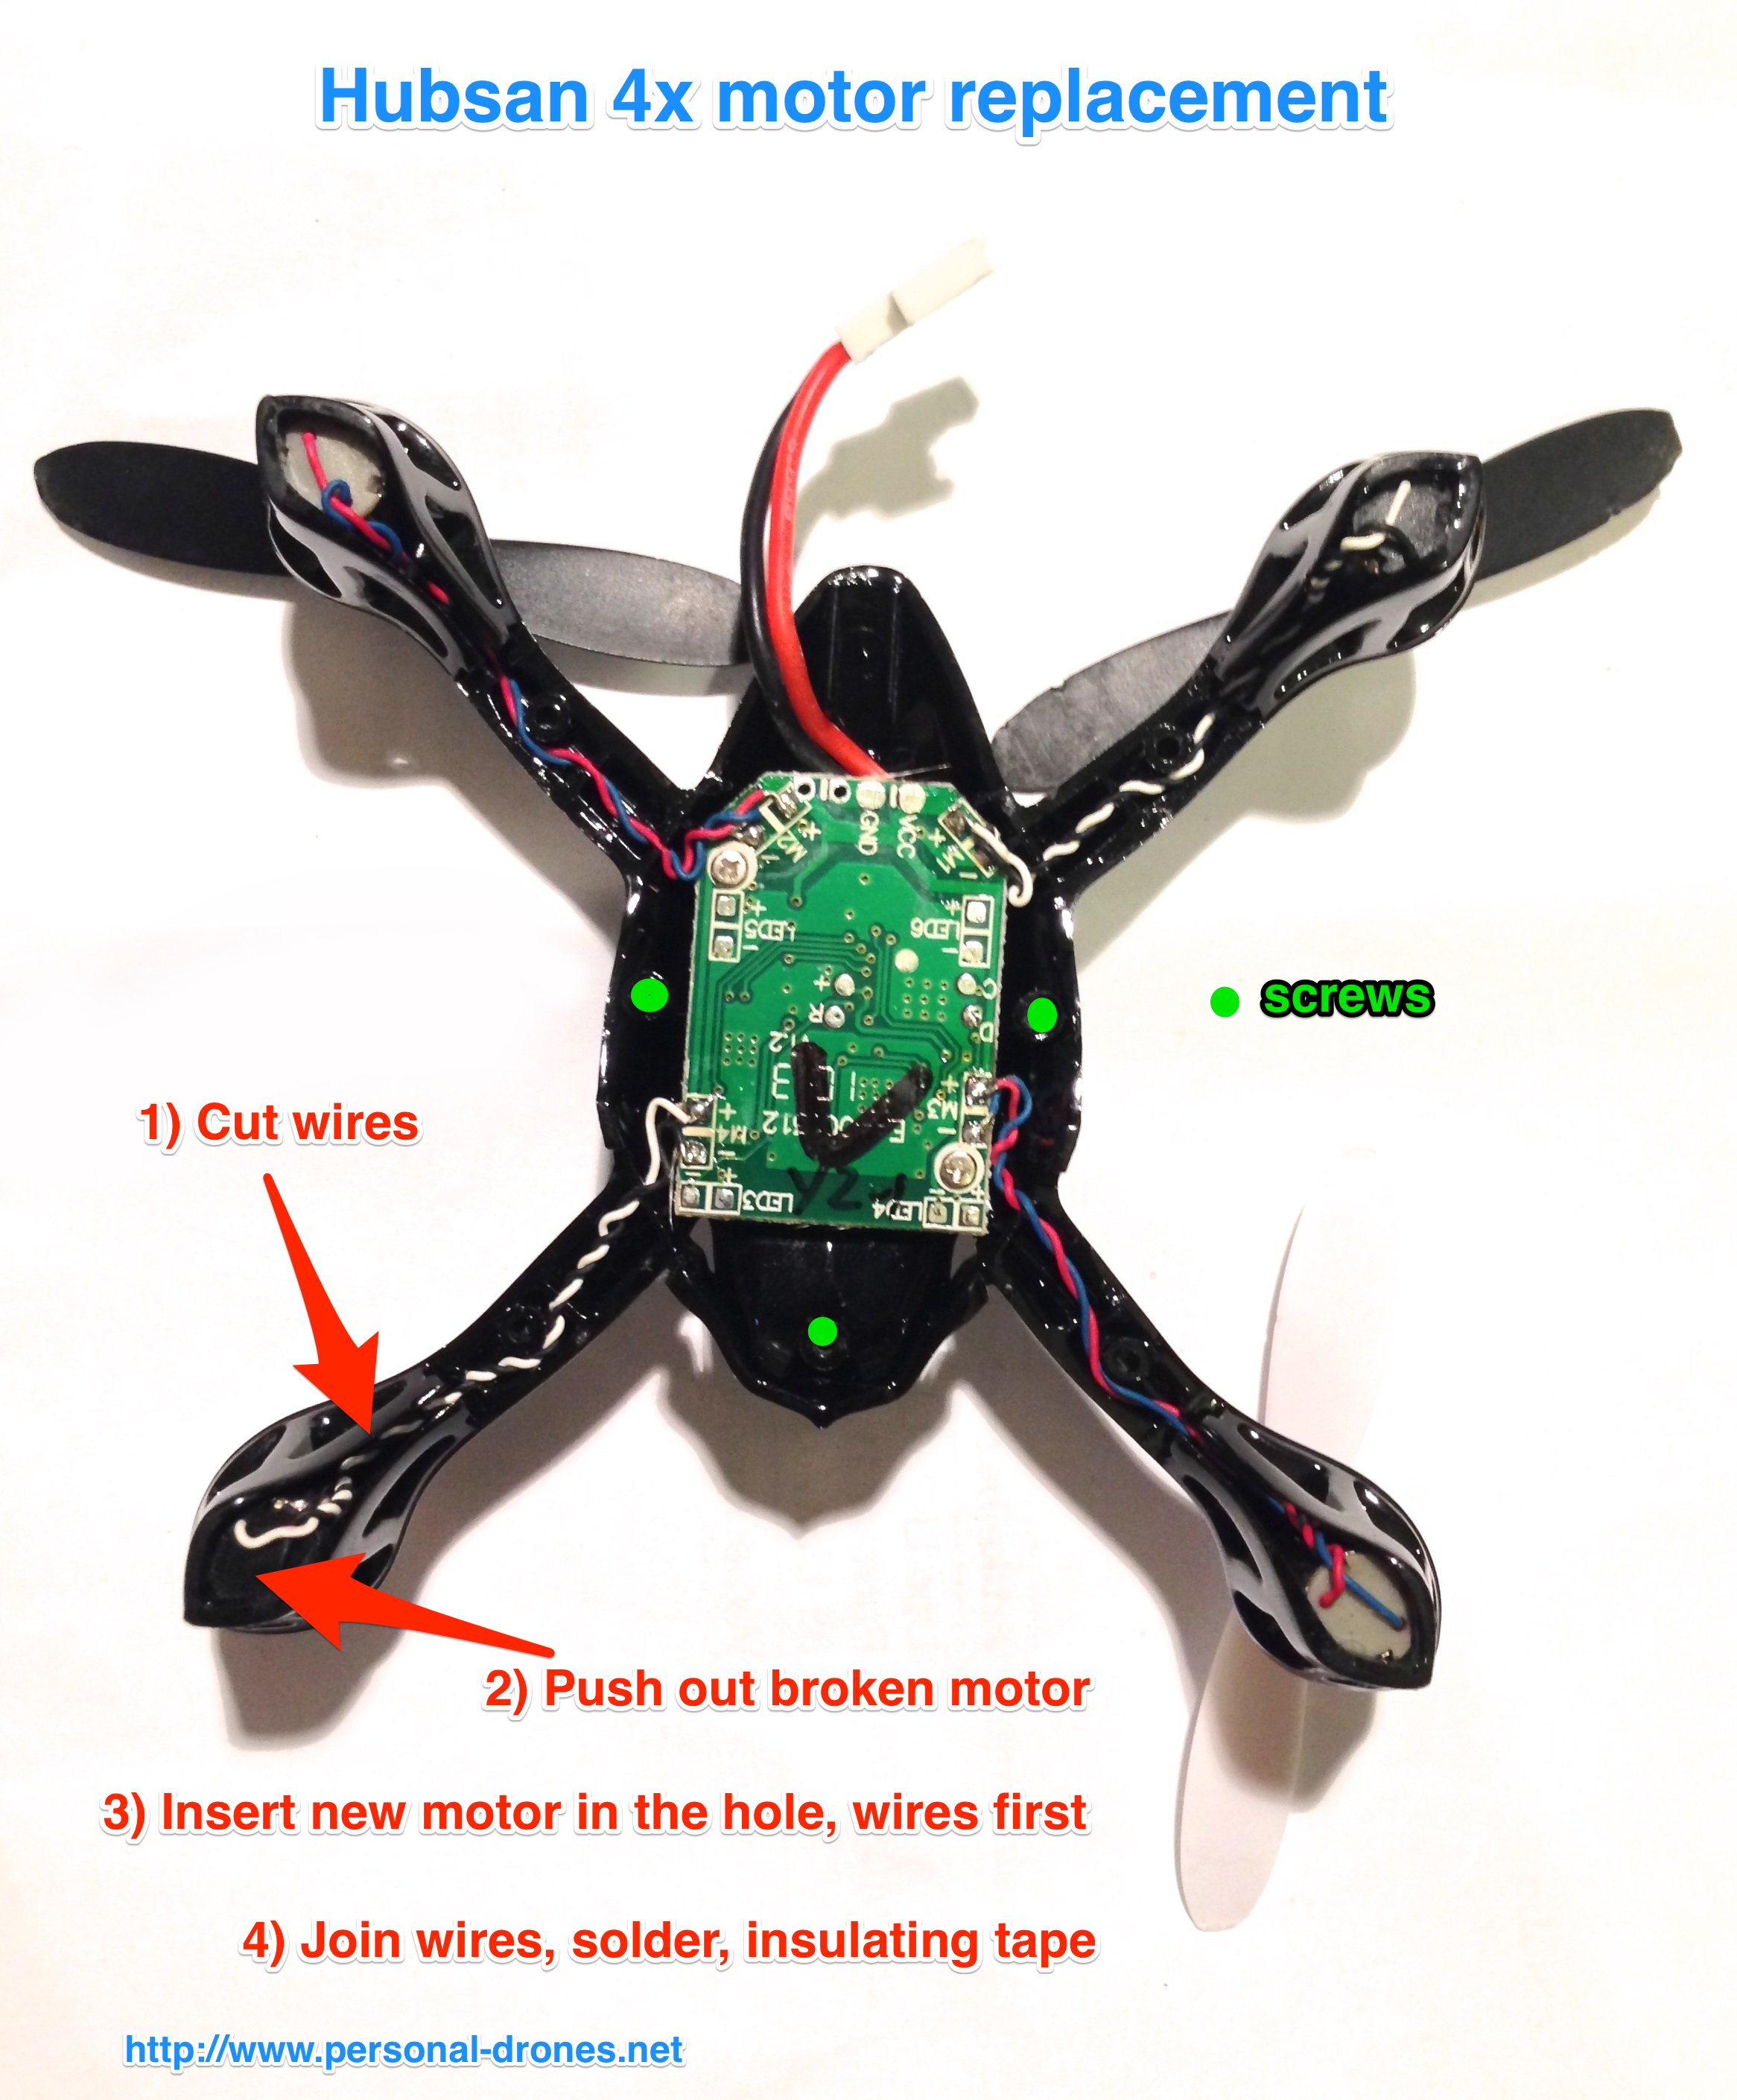 Hubsan 4x motor replacement for Hubsan x4 h107l motor upgrade